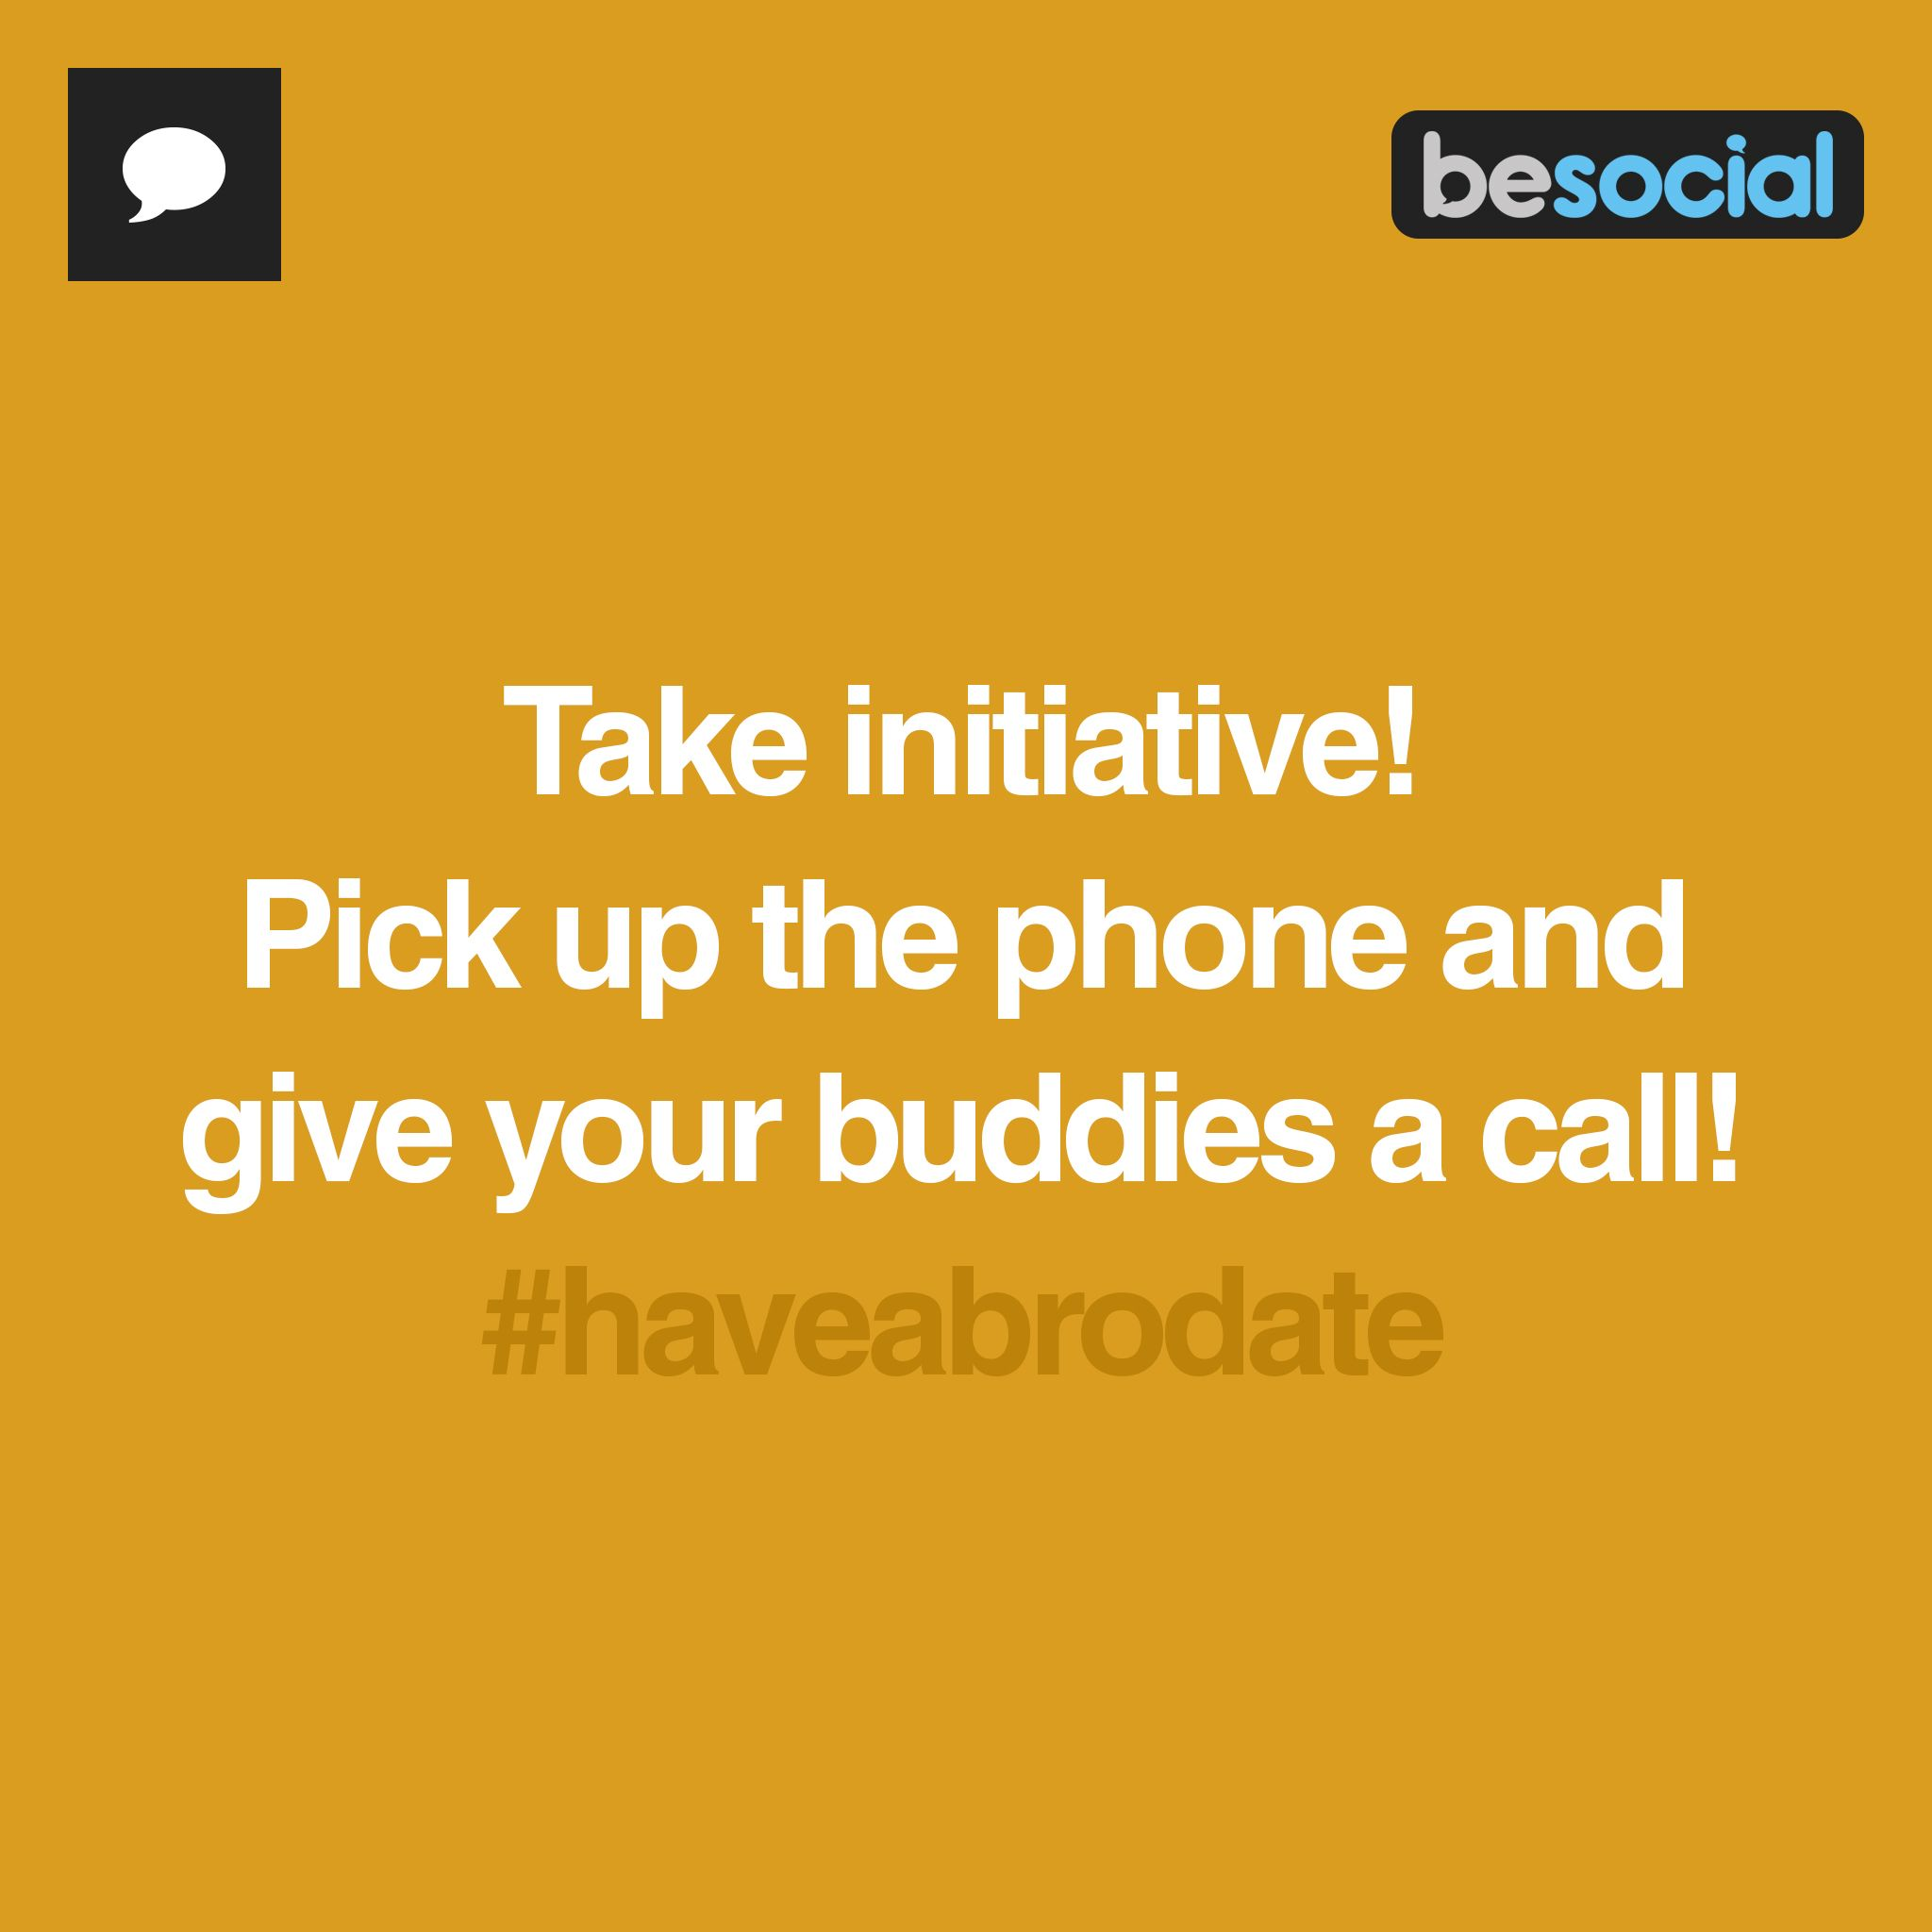 #BeSocial - Take Initiative! Pick up the phone & give your